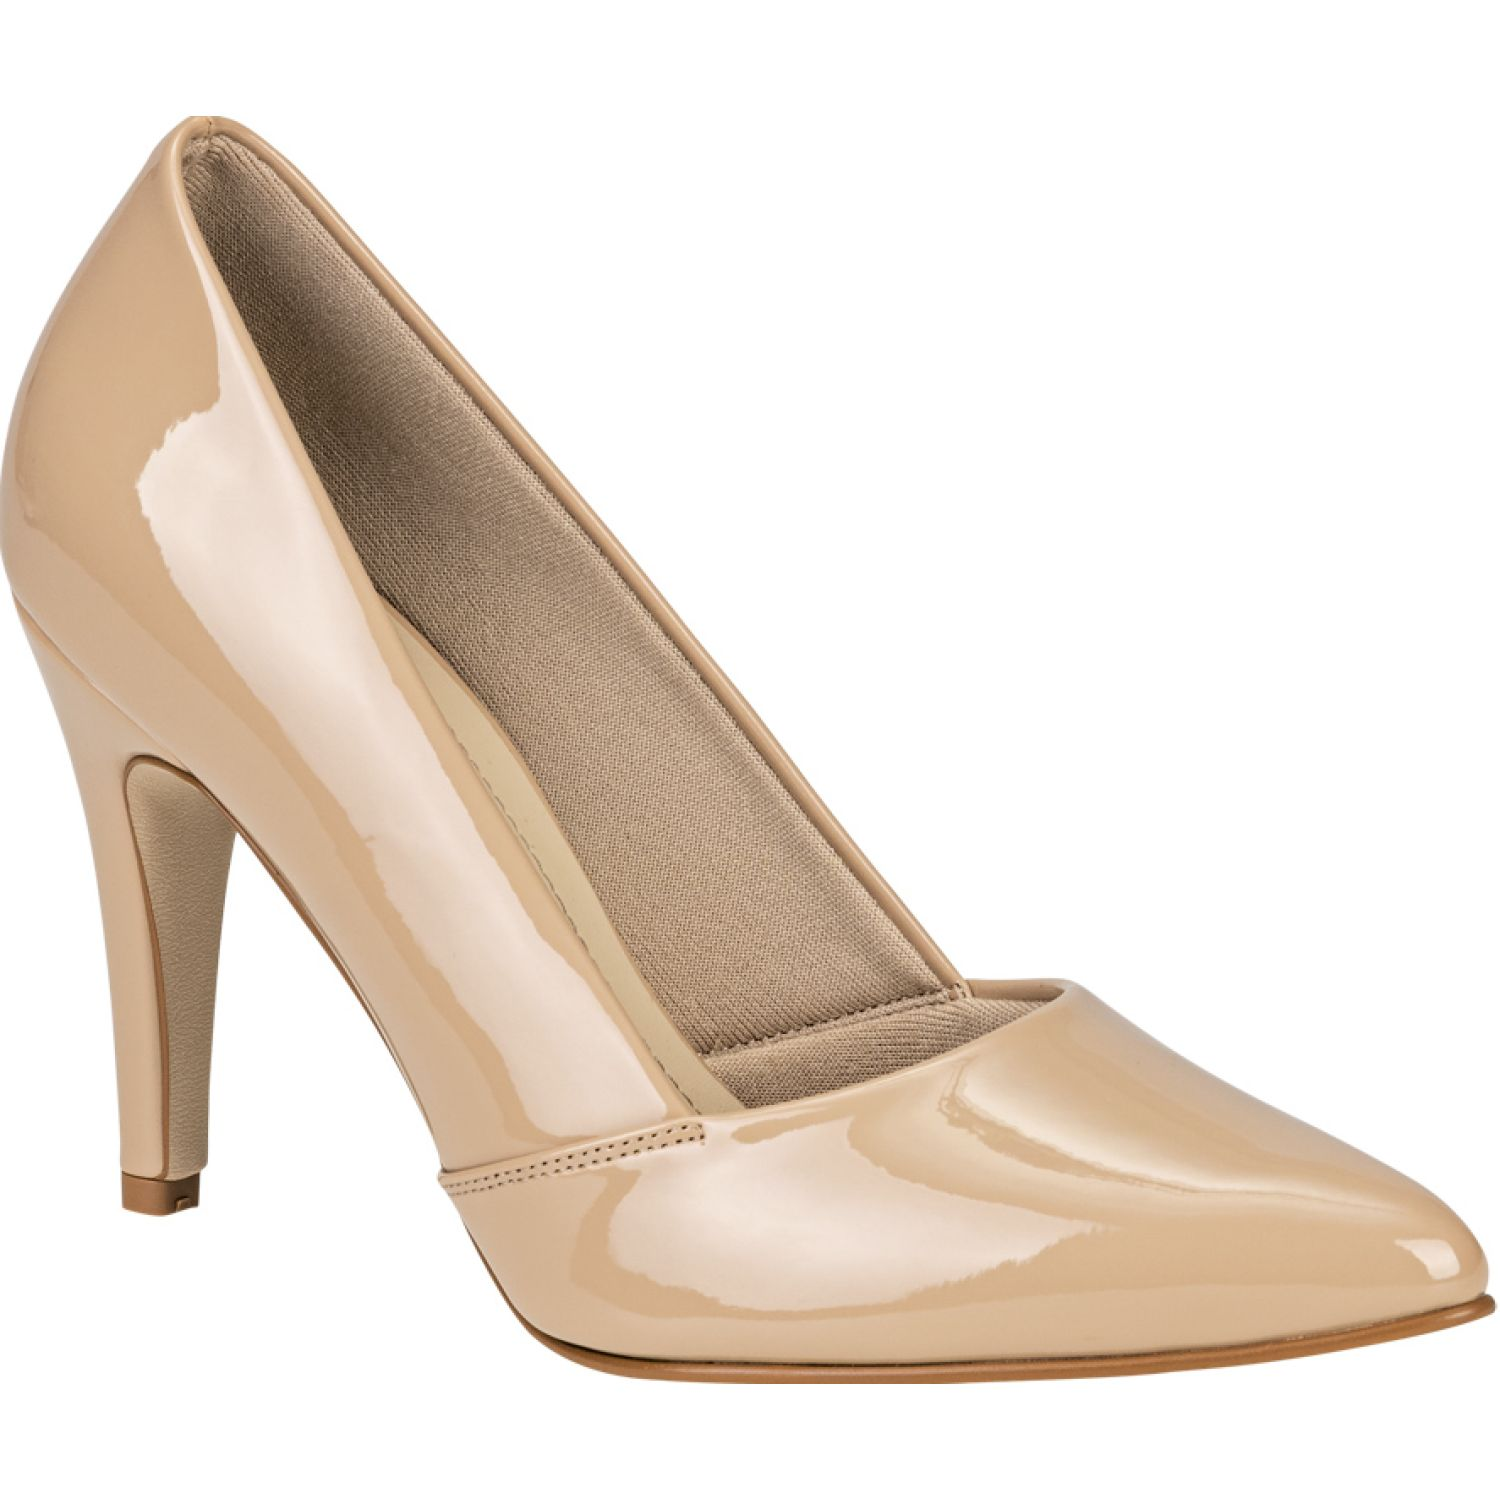 FOOTLOOSE Fd-16i18 BEIGE Estiletos y pumps